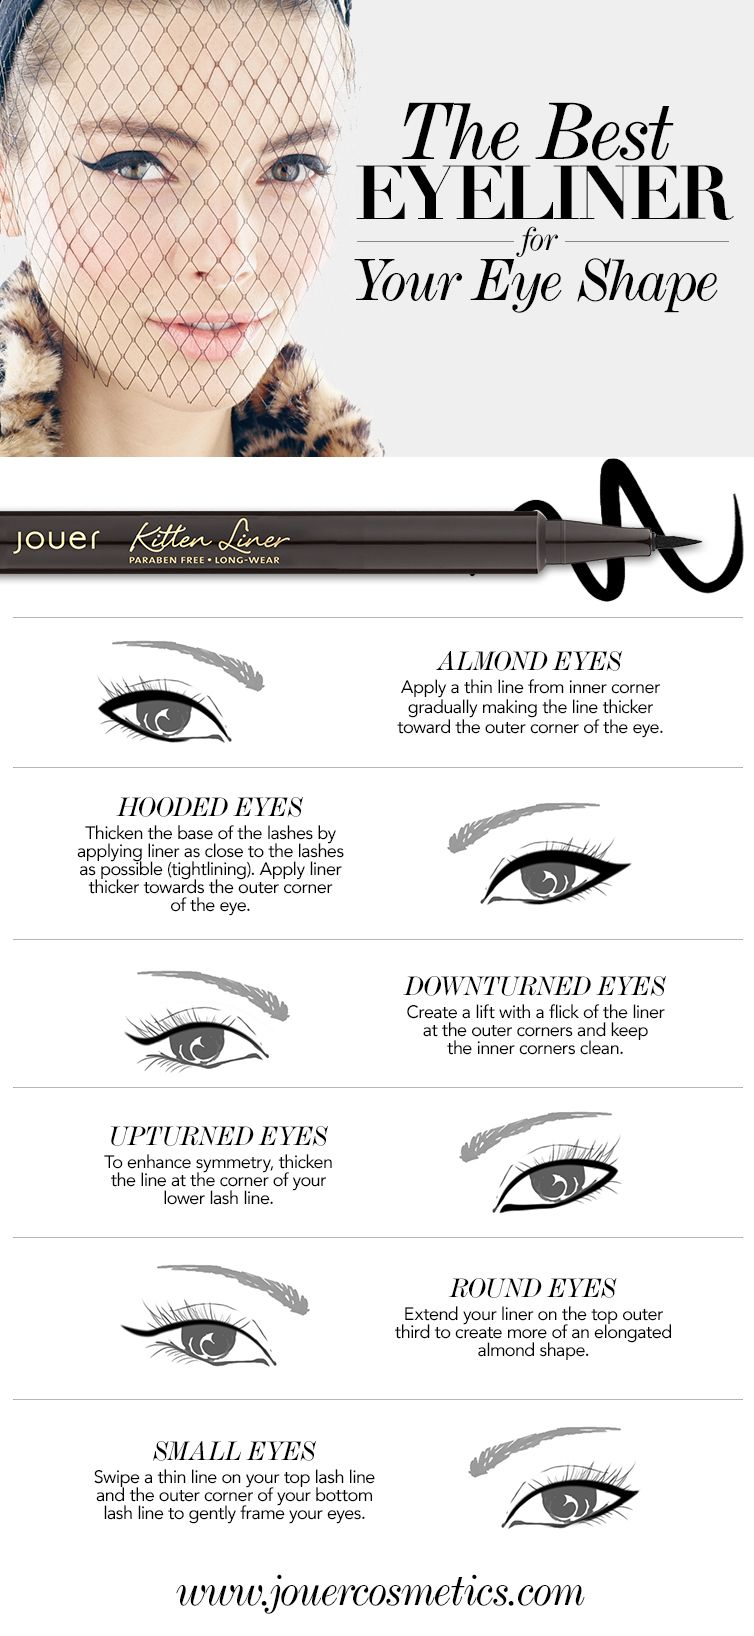 Find the best eyeliner technique for your eye shape with this find the best eyeliner technique for your eye shape with this helpful chart jouercosmetics geenschuldenfo Image collections